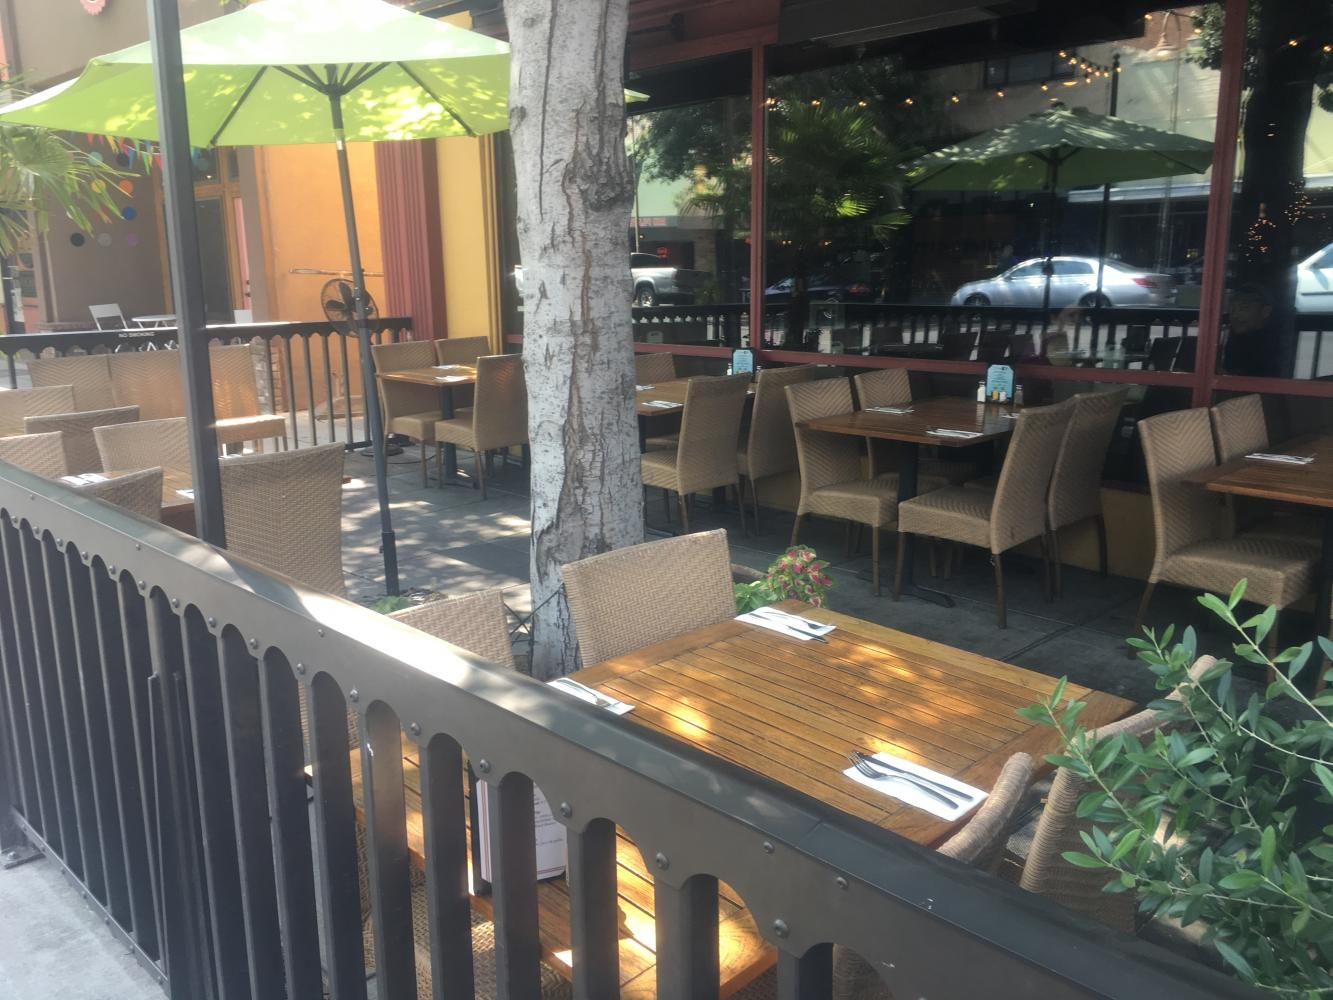 The table at Tres Hombres where a Chico man claims his phone was almost stolen. Photo credit: Natalie Hanson